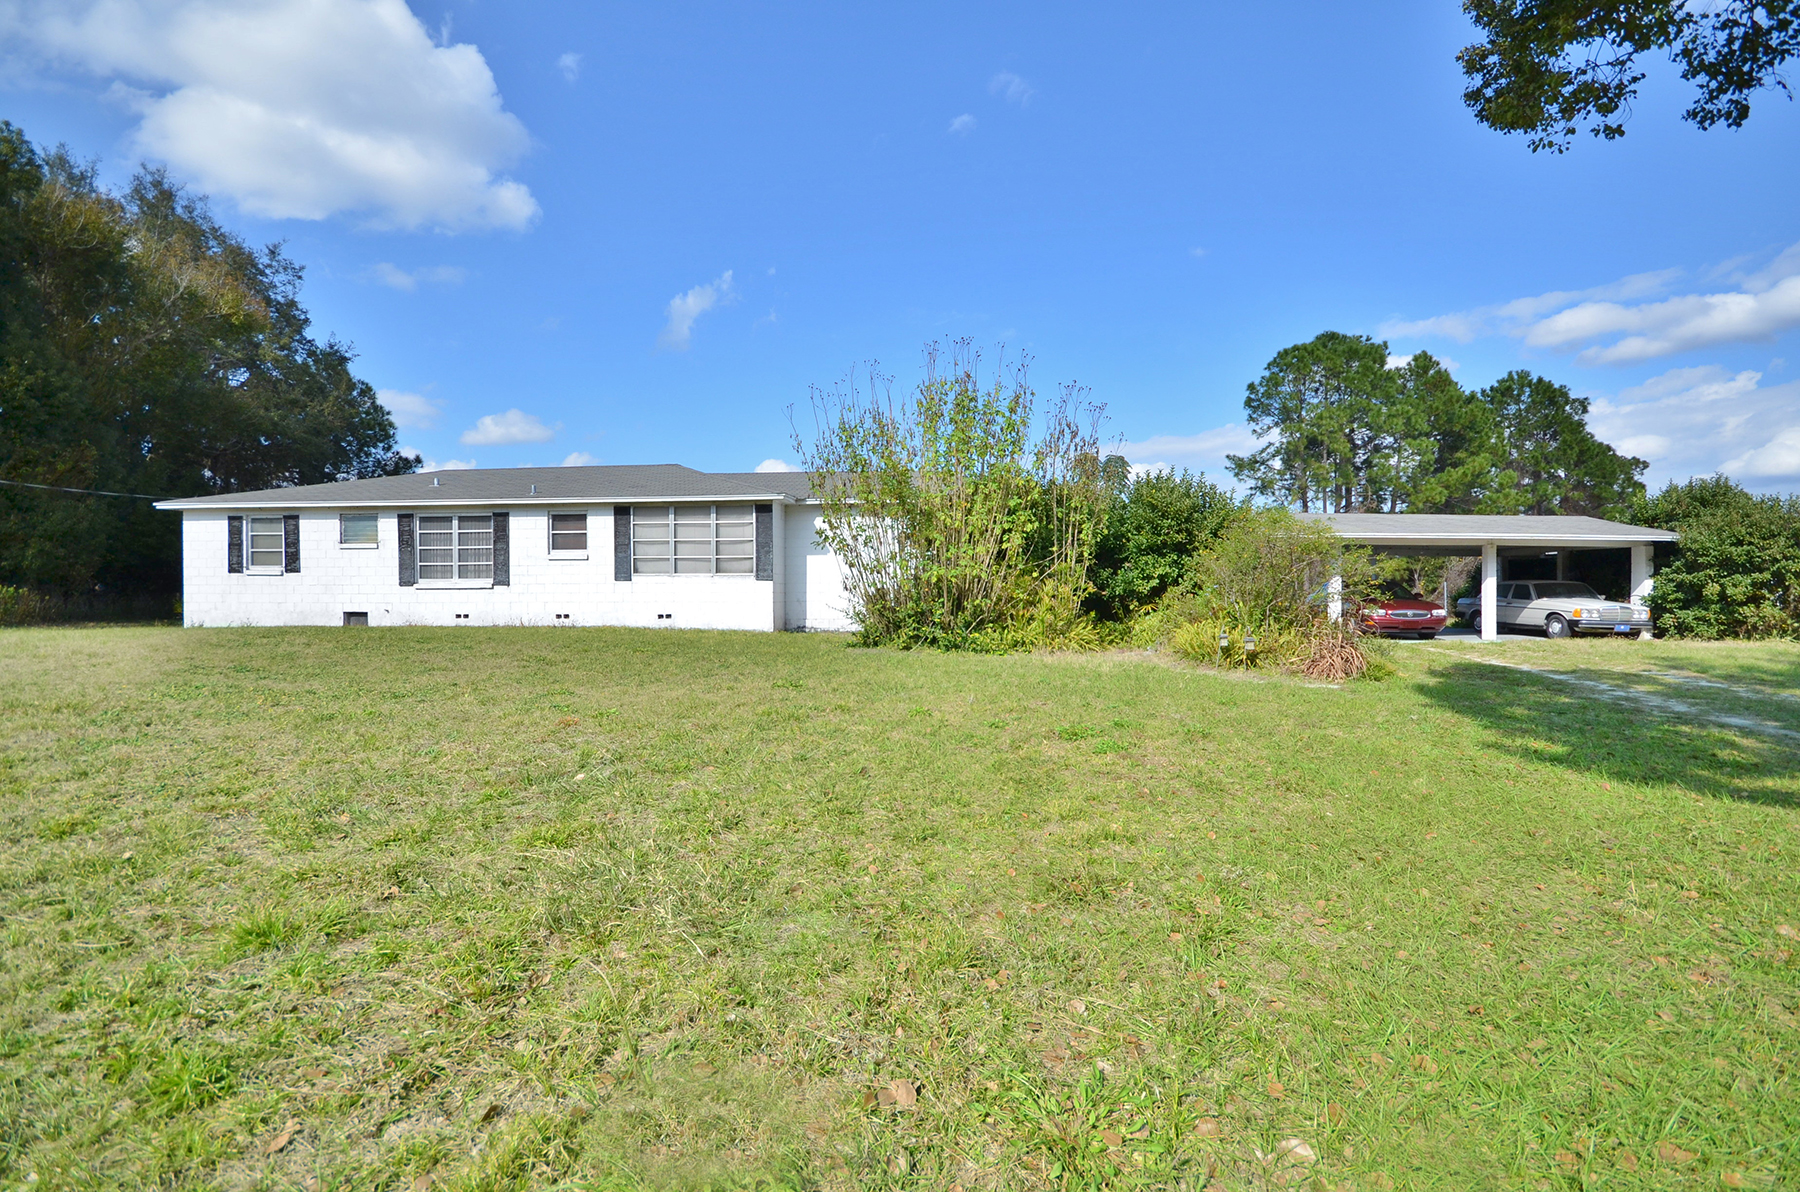 Single Family Home for Sale at 18625 County Road 450a , Umatilla, FL 32784 18625 County Road 450a Umatilla, Florida, 32784 United States